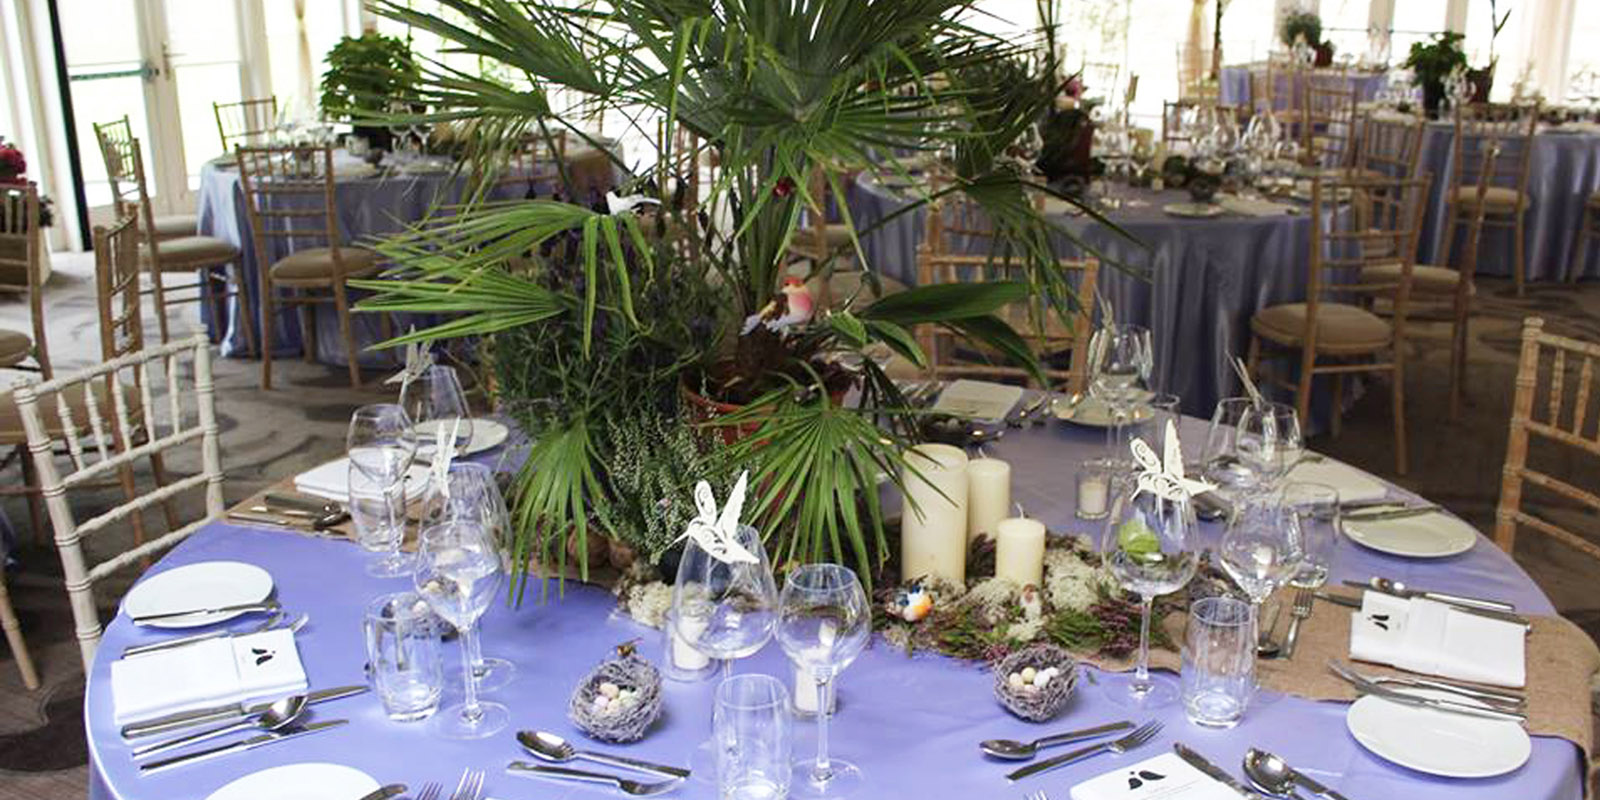 wedding table settings with centrepiece